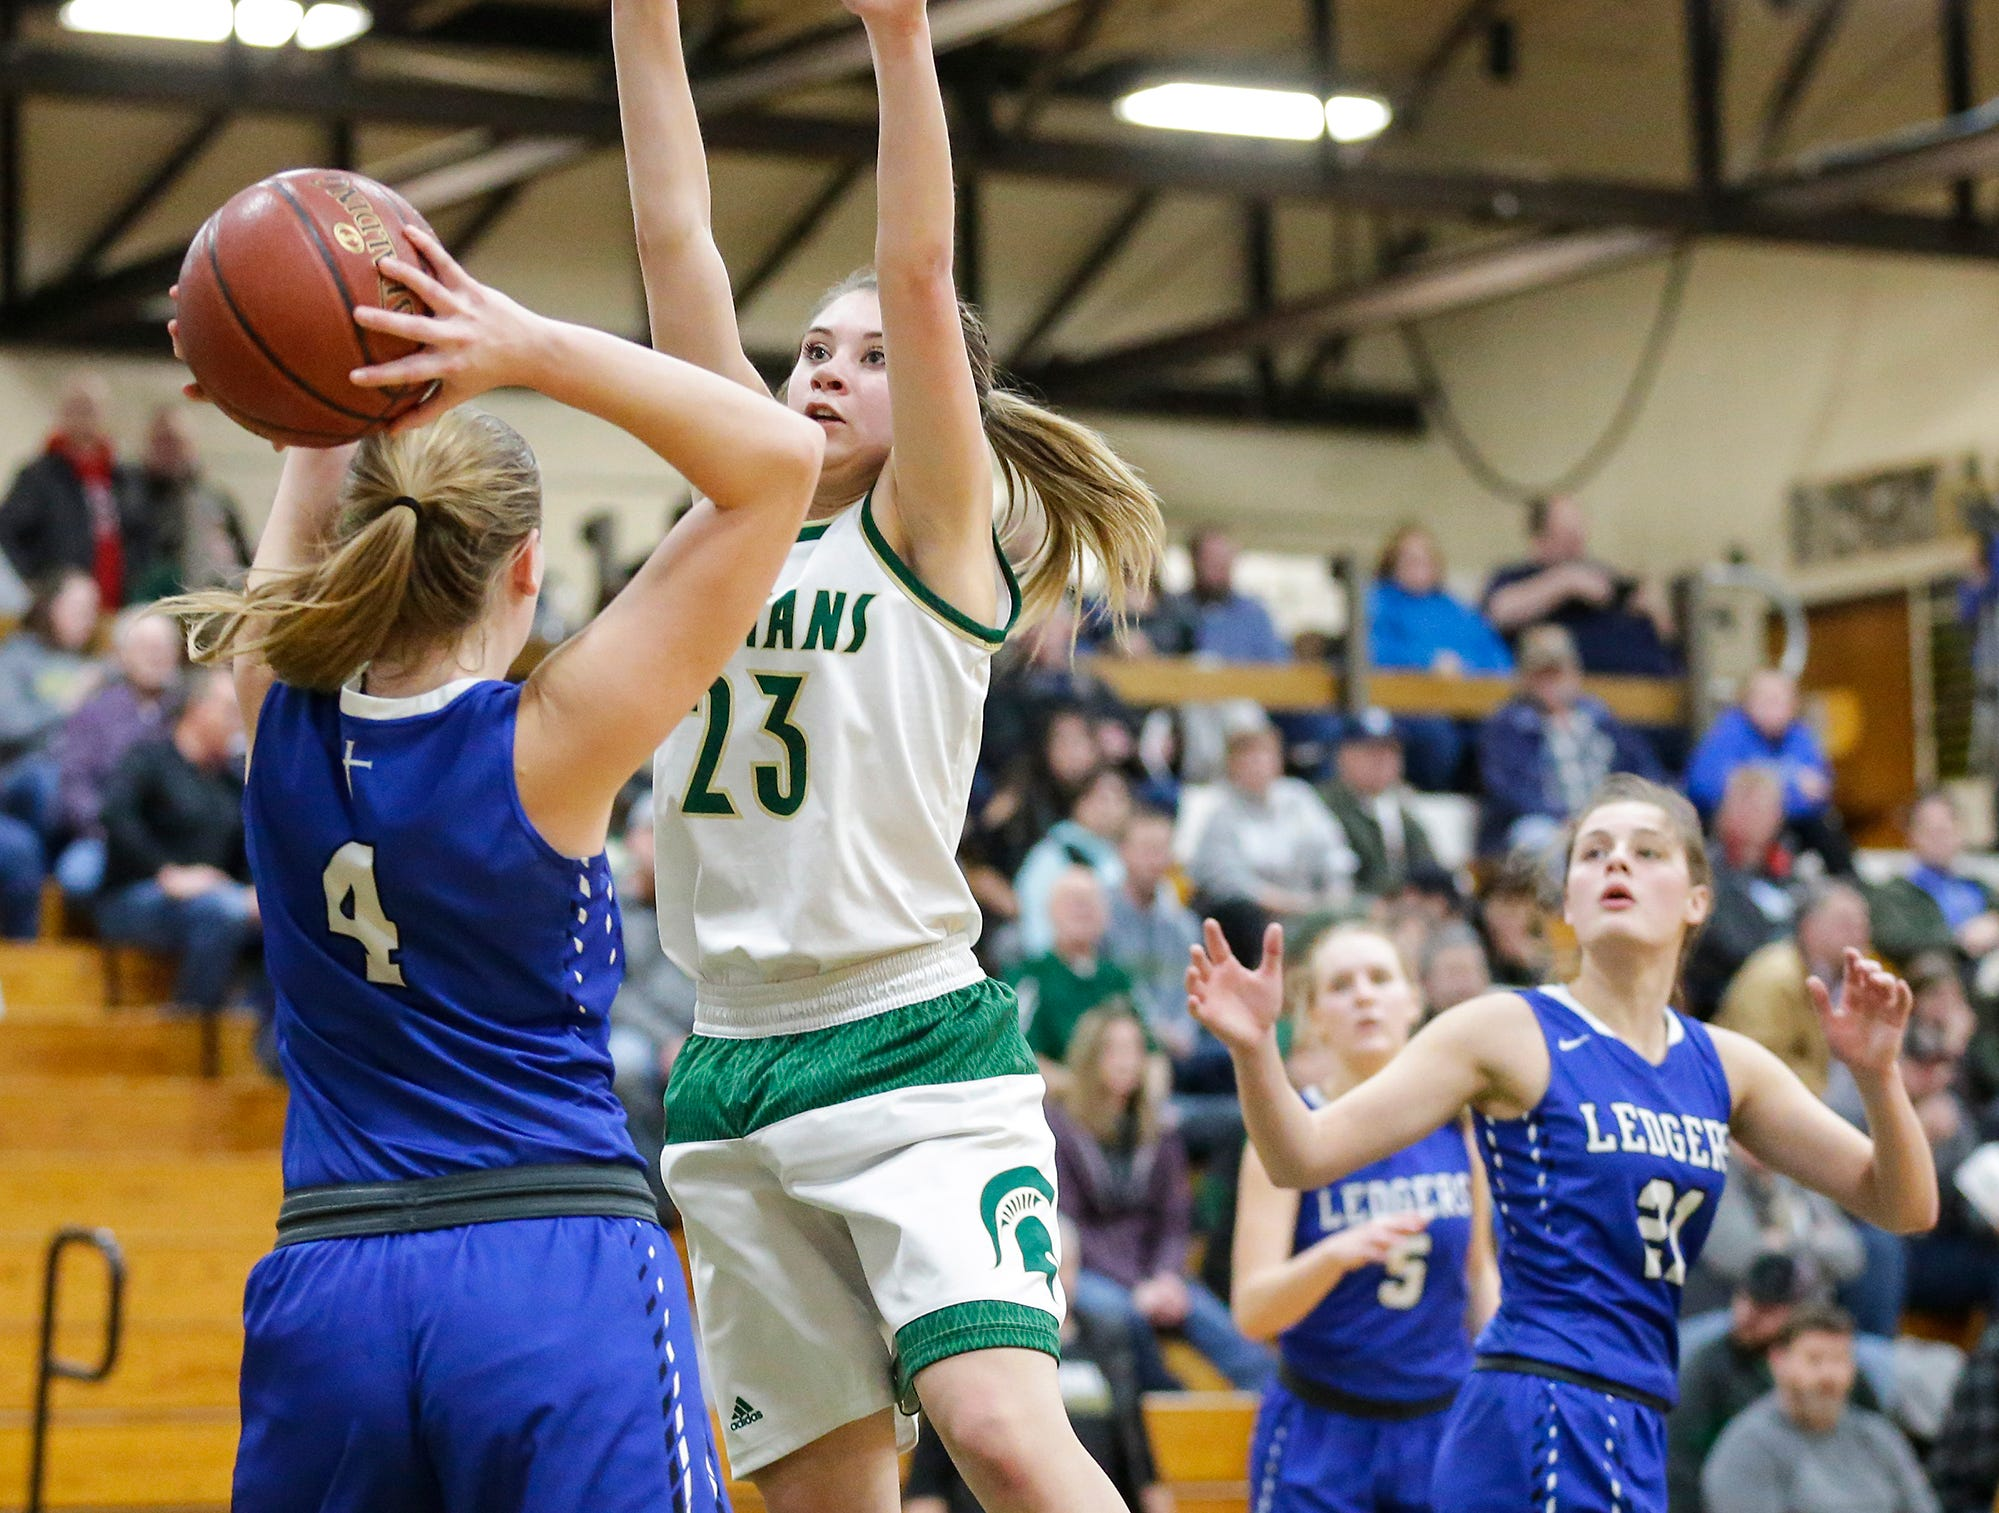 Laconia High School girls basketball's Harper Wurtz attempts to block a pass from St. Mary's Springs Academy's Brianna Freund Tuesday, January 15, 2019 during their game in Rosendale. Laconia won the game 57-45. Doug Raflik/USA TODAY NETWORK-Wisconsin